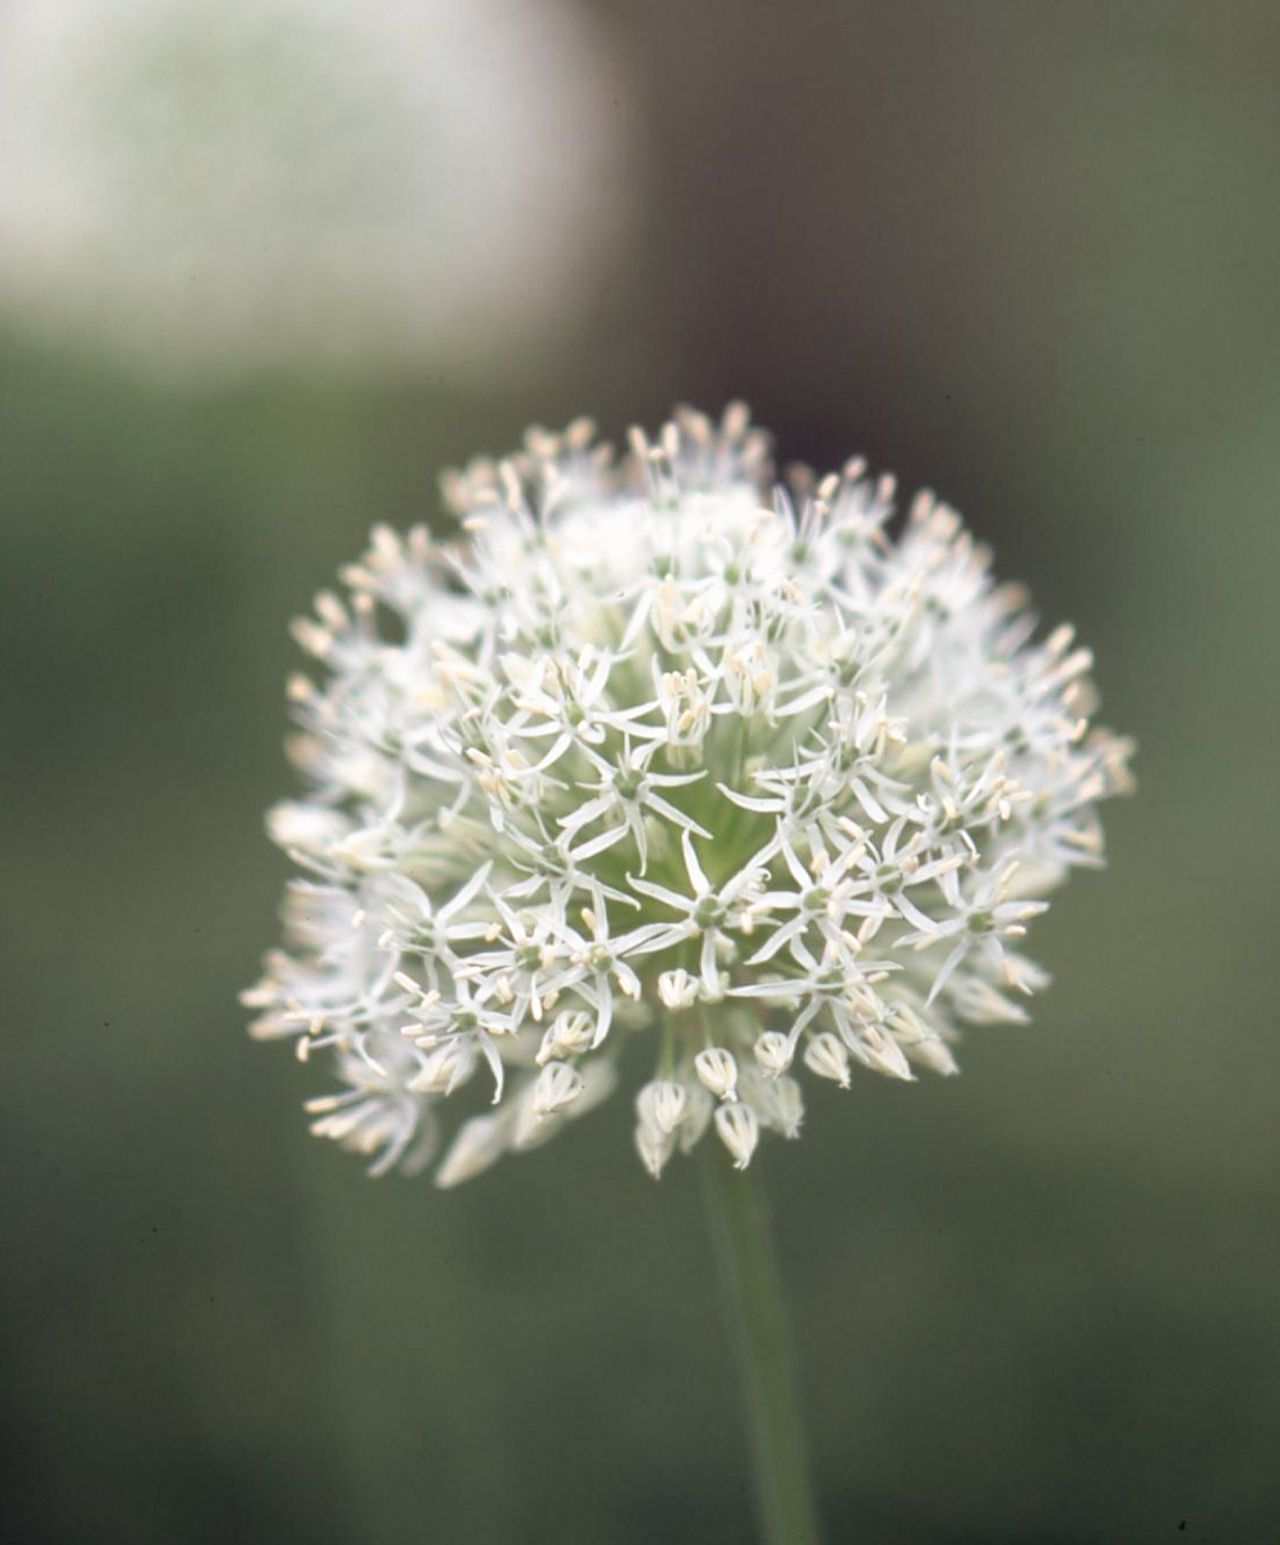 16 Of The Prettiest Allium Varieties To Plant In Your Garden In 2020 Plants White Flower Farm Shade Plants